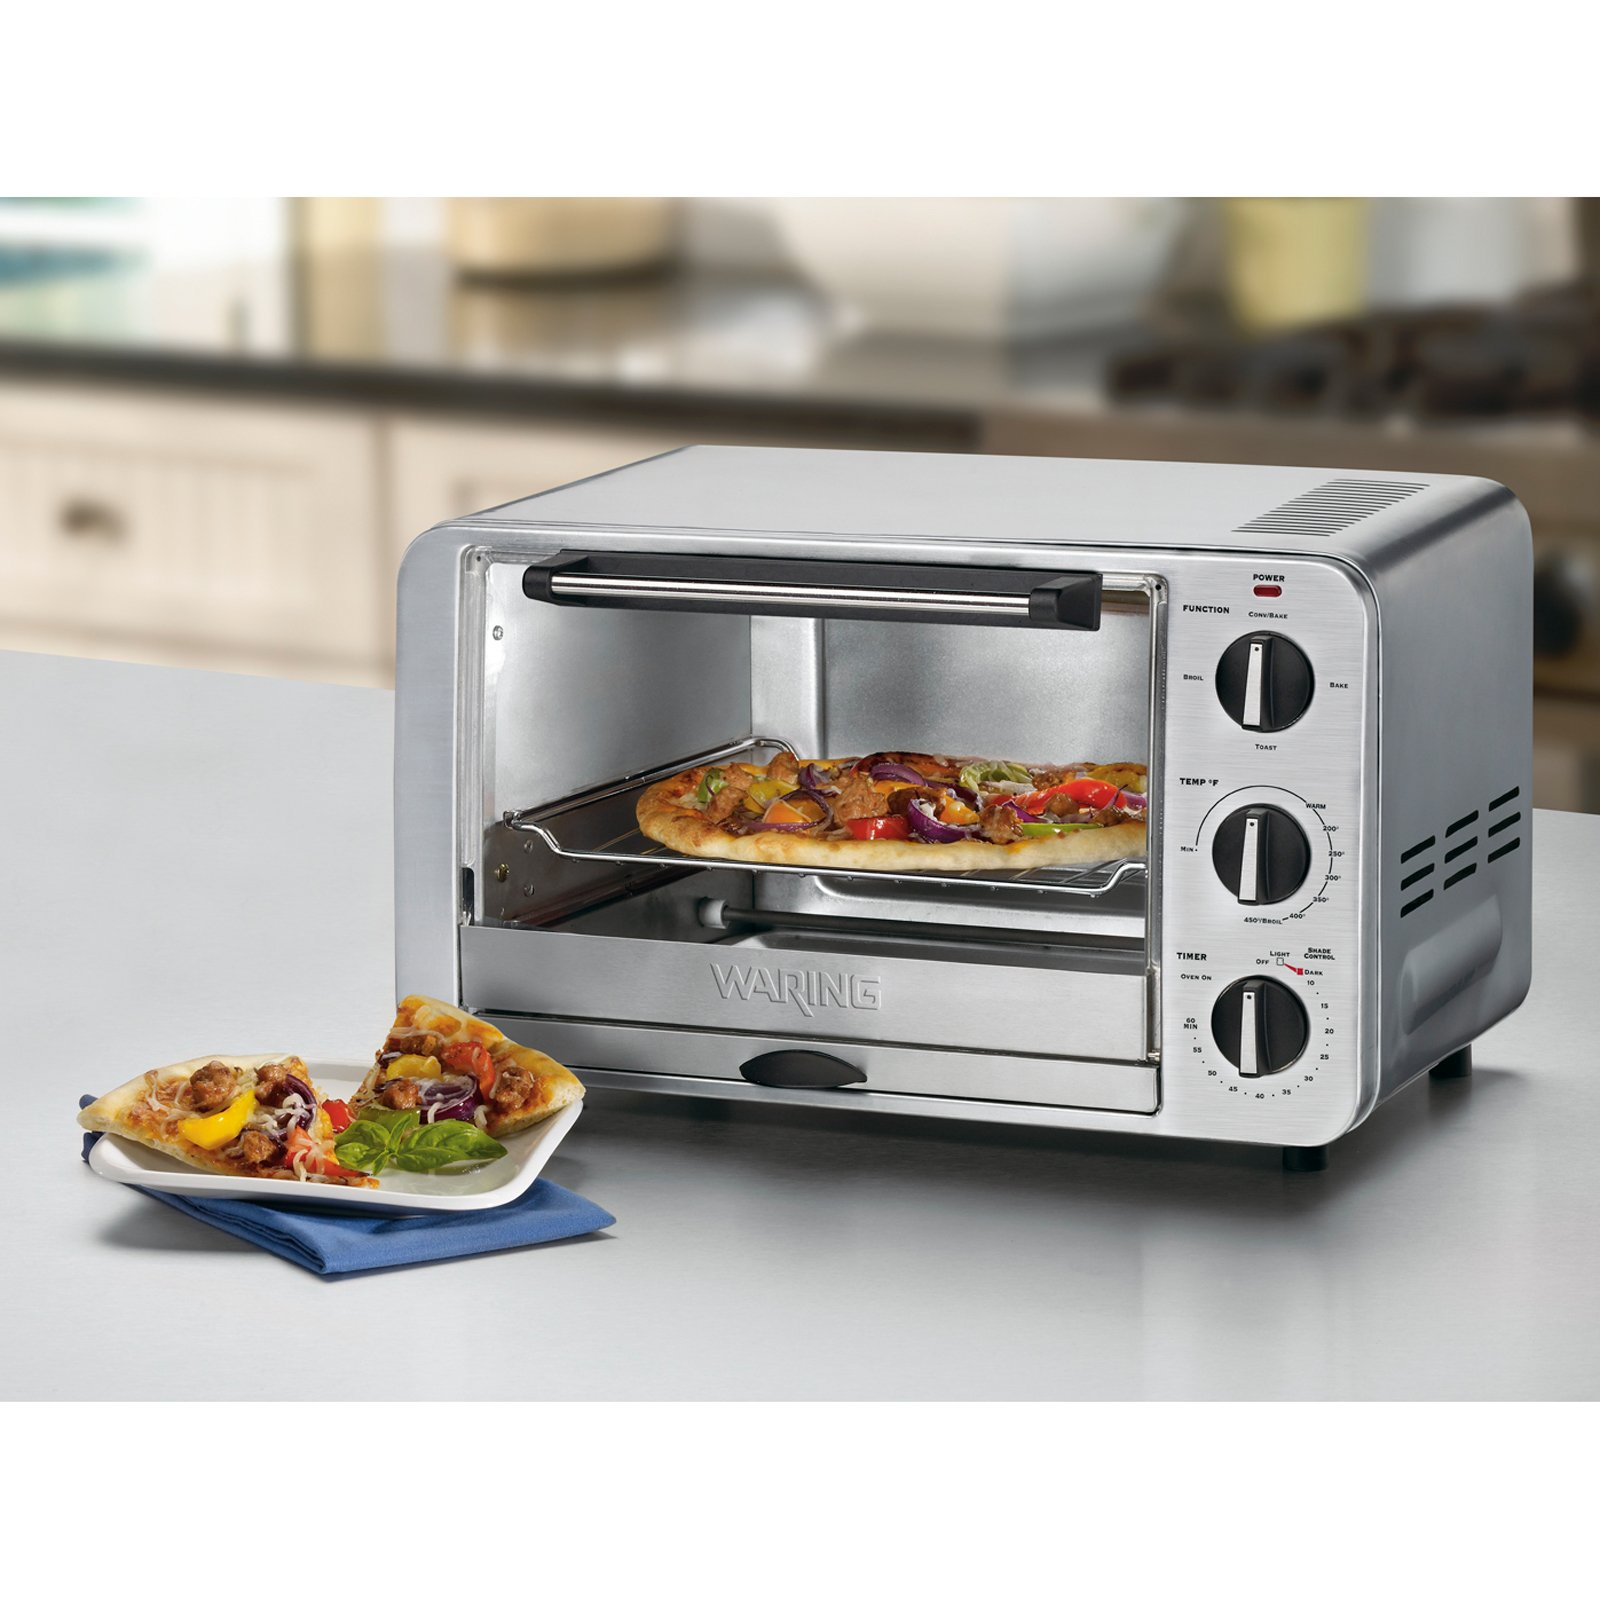 Countertop Convection Toaster Oven Recipes : toaster oven for small meals rather than your large stove or oven ...